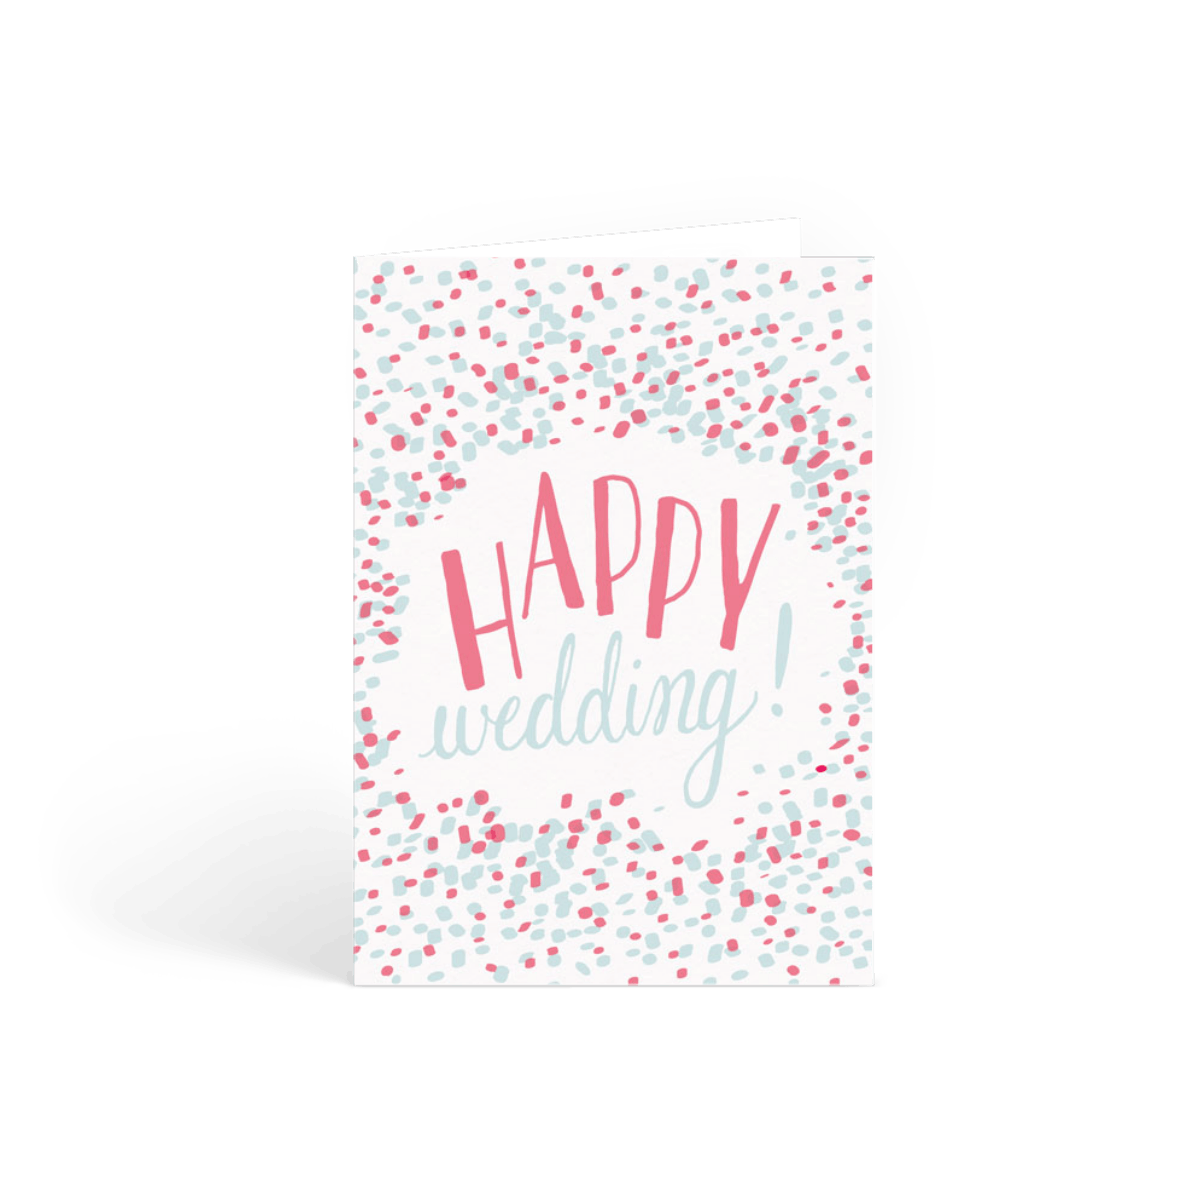 Https%3a%2f%2fwww.papier.com%2fproduct image%2f10826%2f2%2fhappy wedding confetti 2761 front 1473347846.png?ixlib=rb 1.1